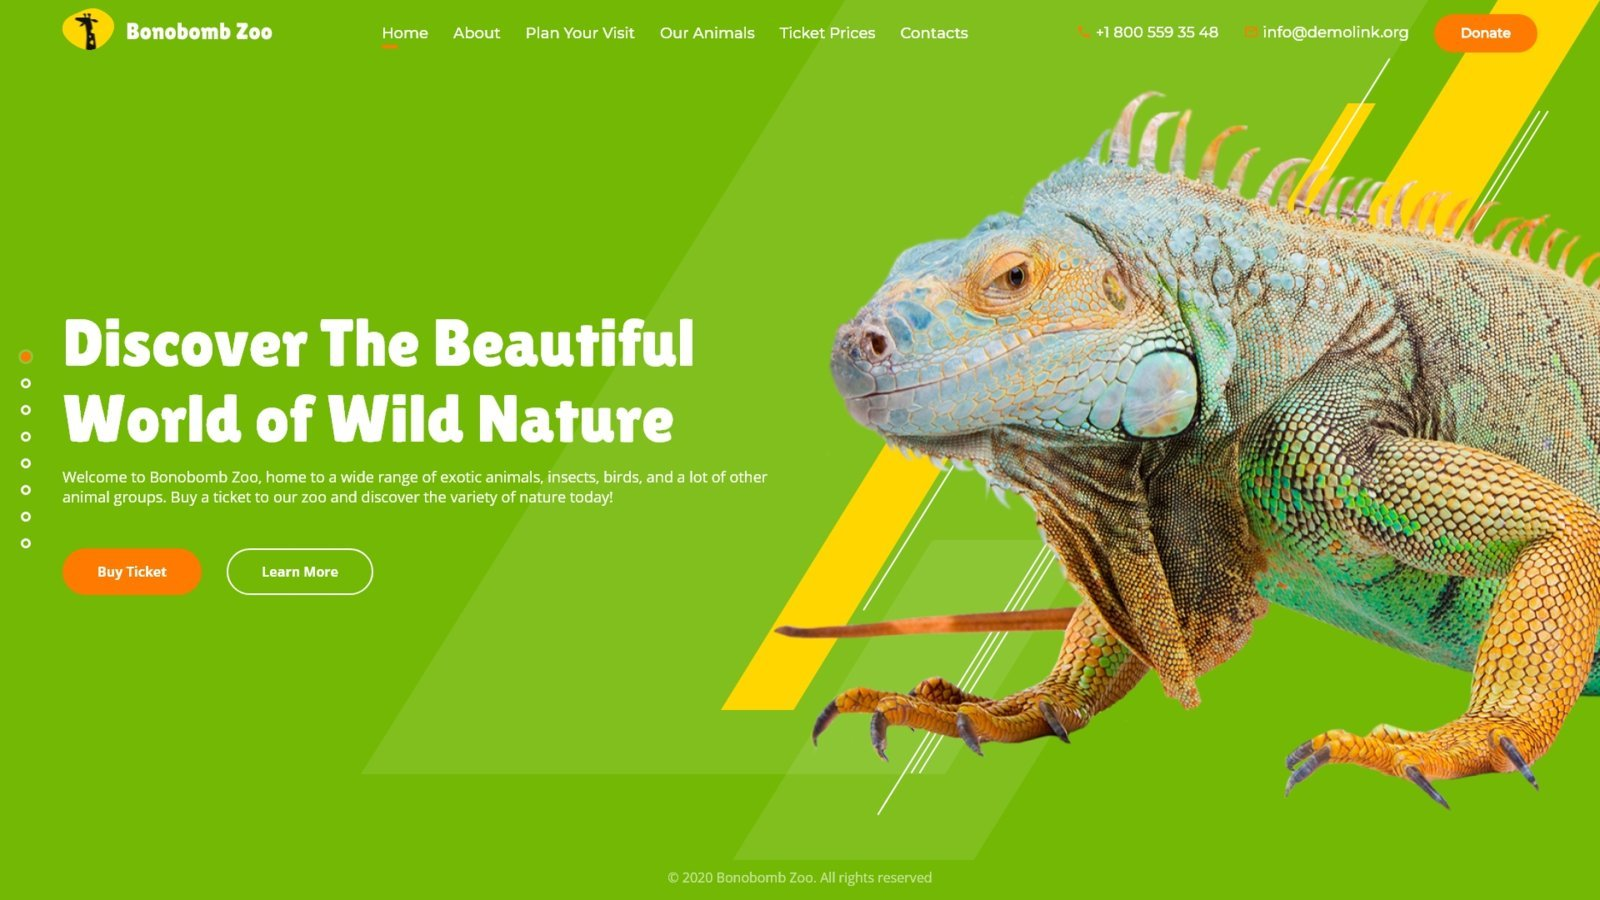 Bonobomb - Full Animated Zoo Website Template - screenshot